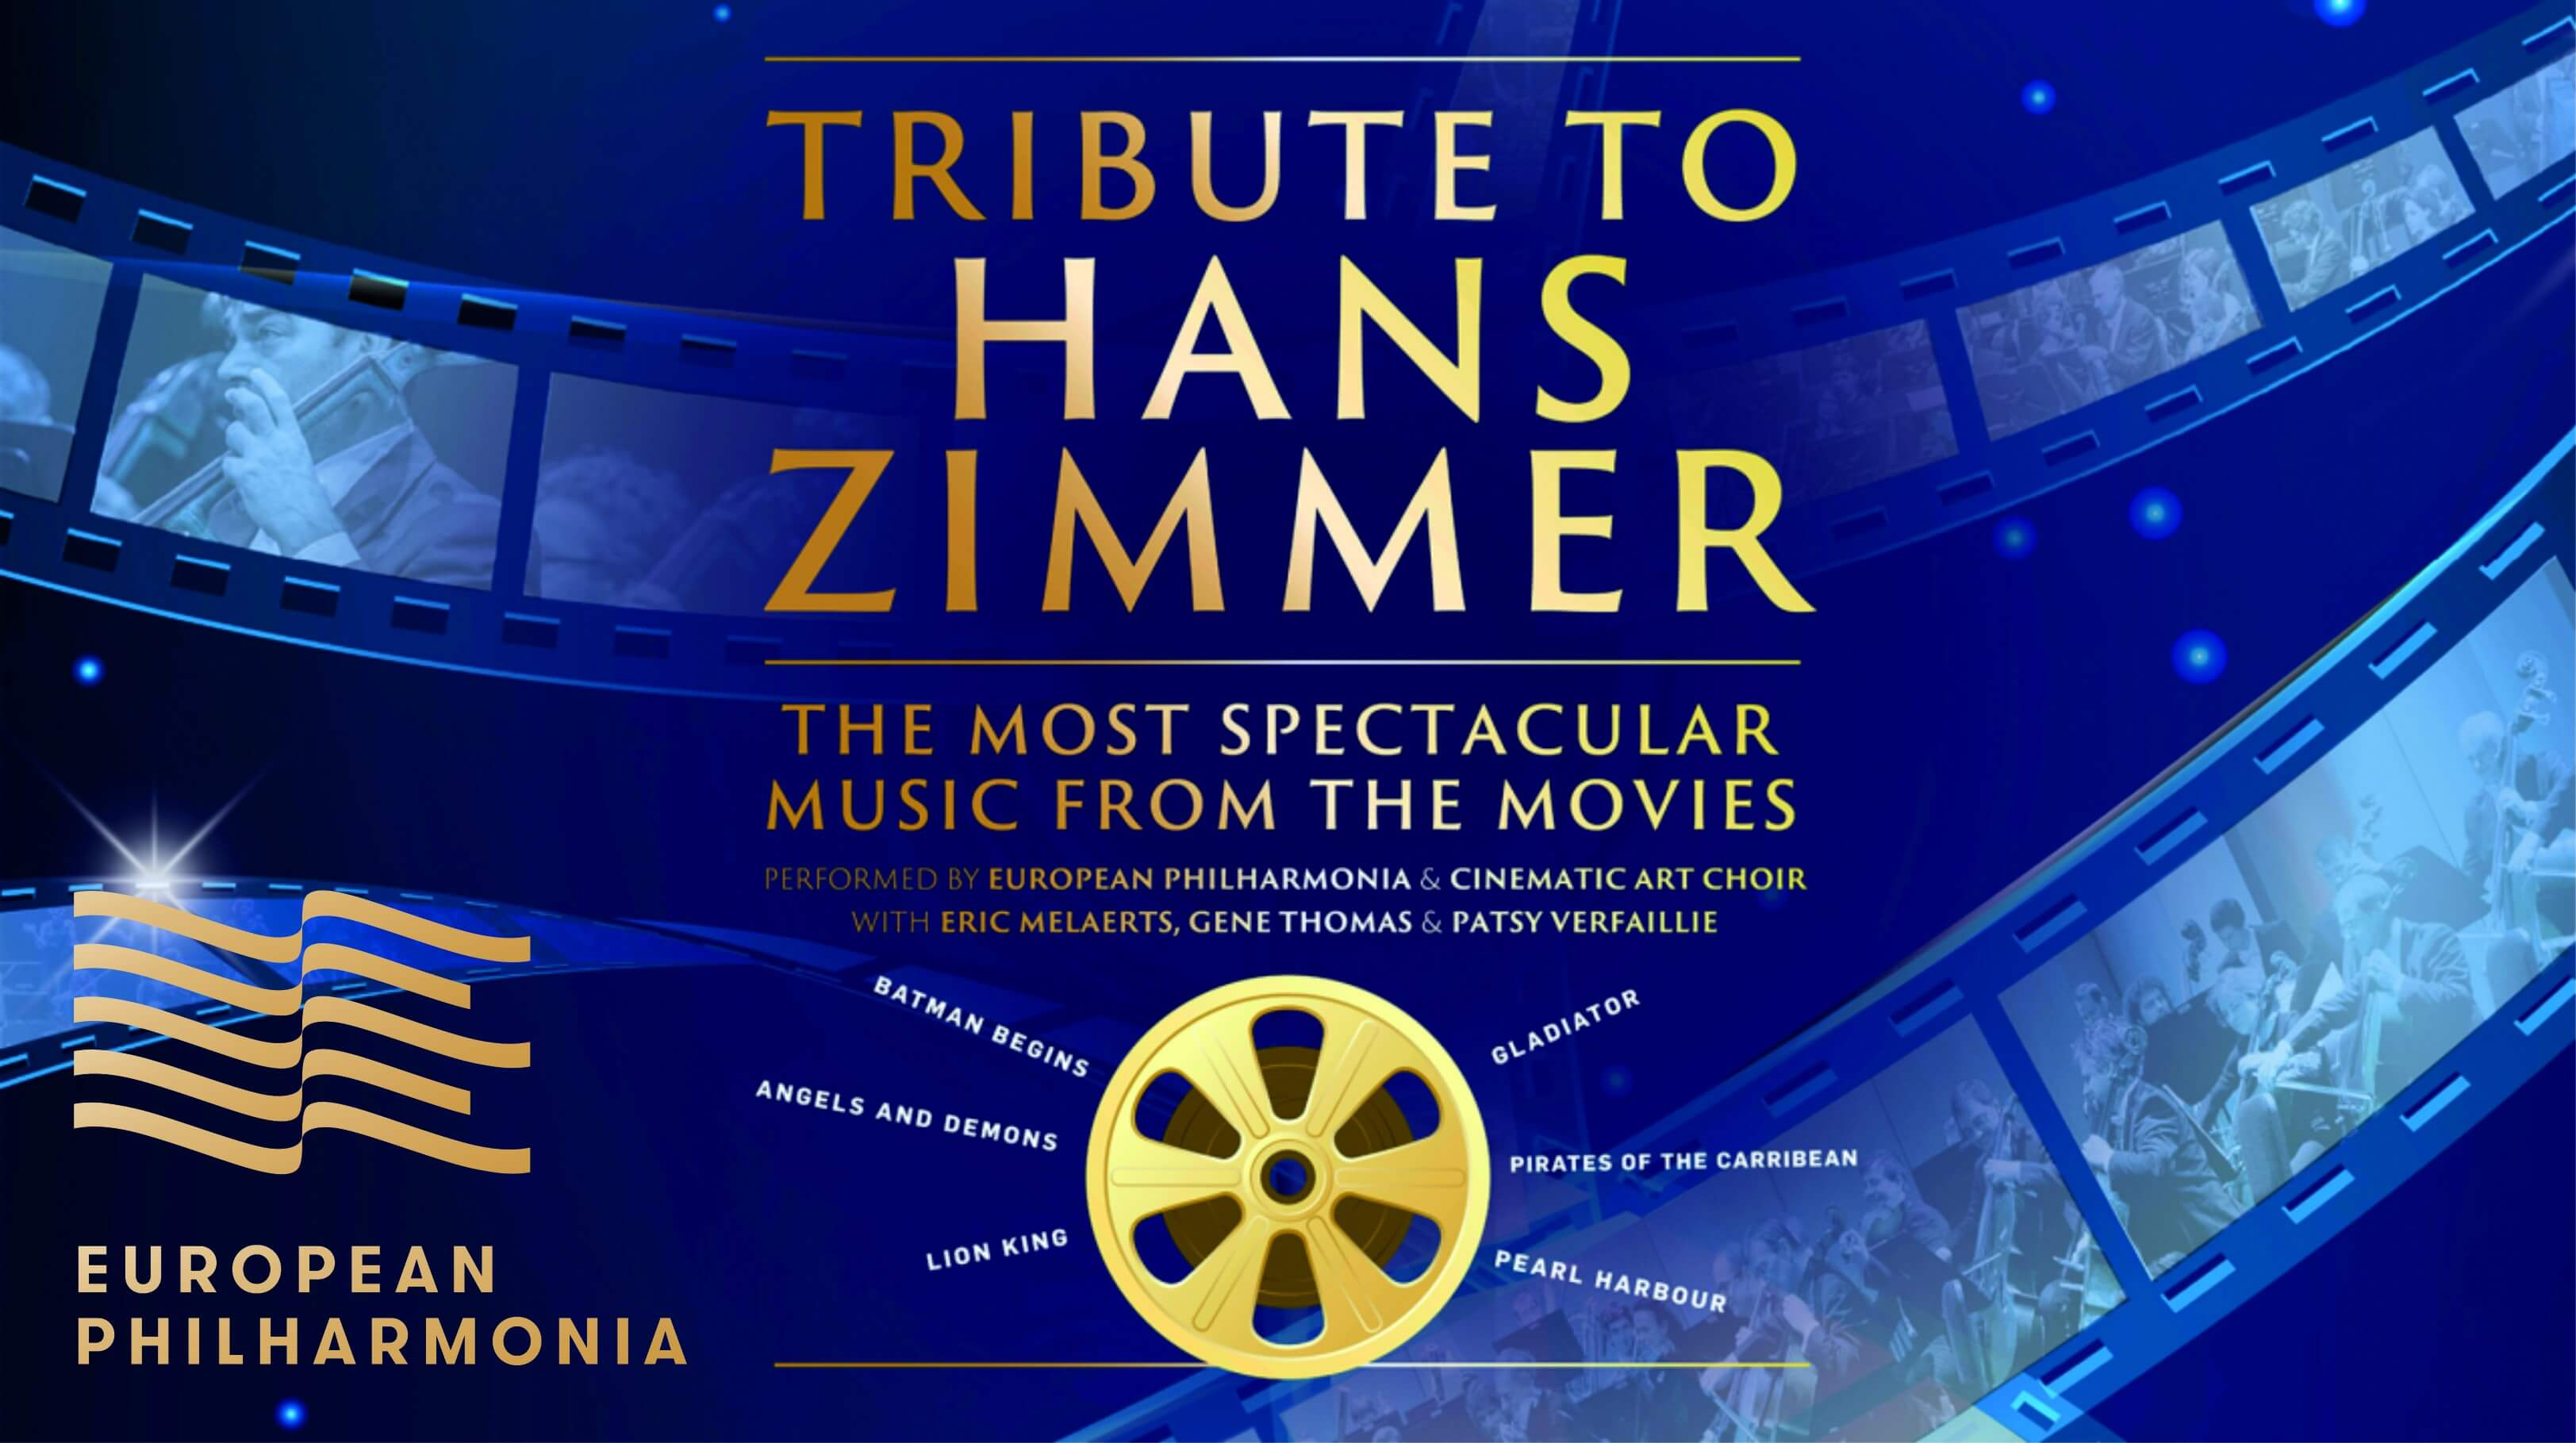 Tribute to Hans Zimmer - European Philharmonia